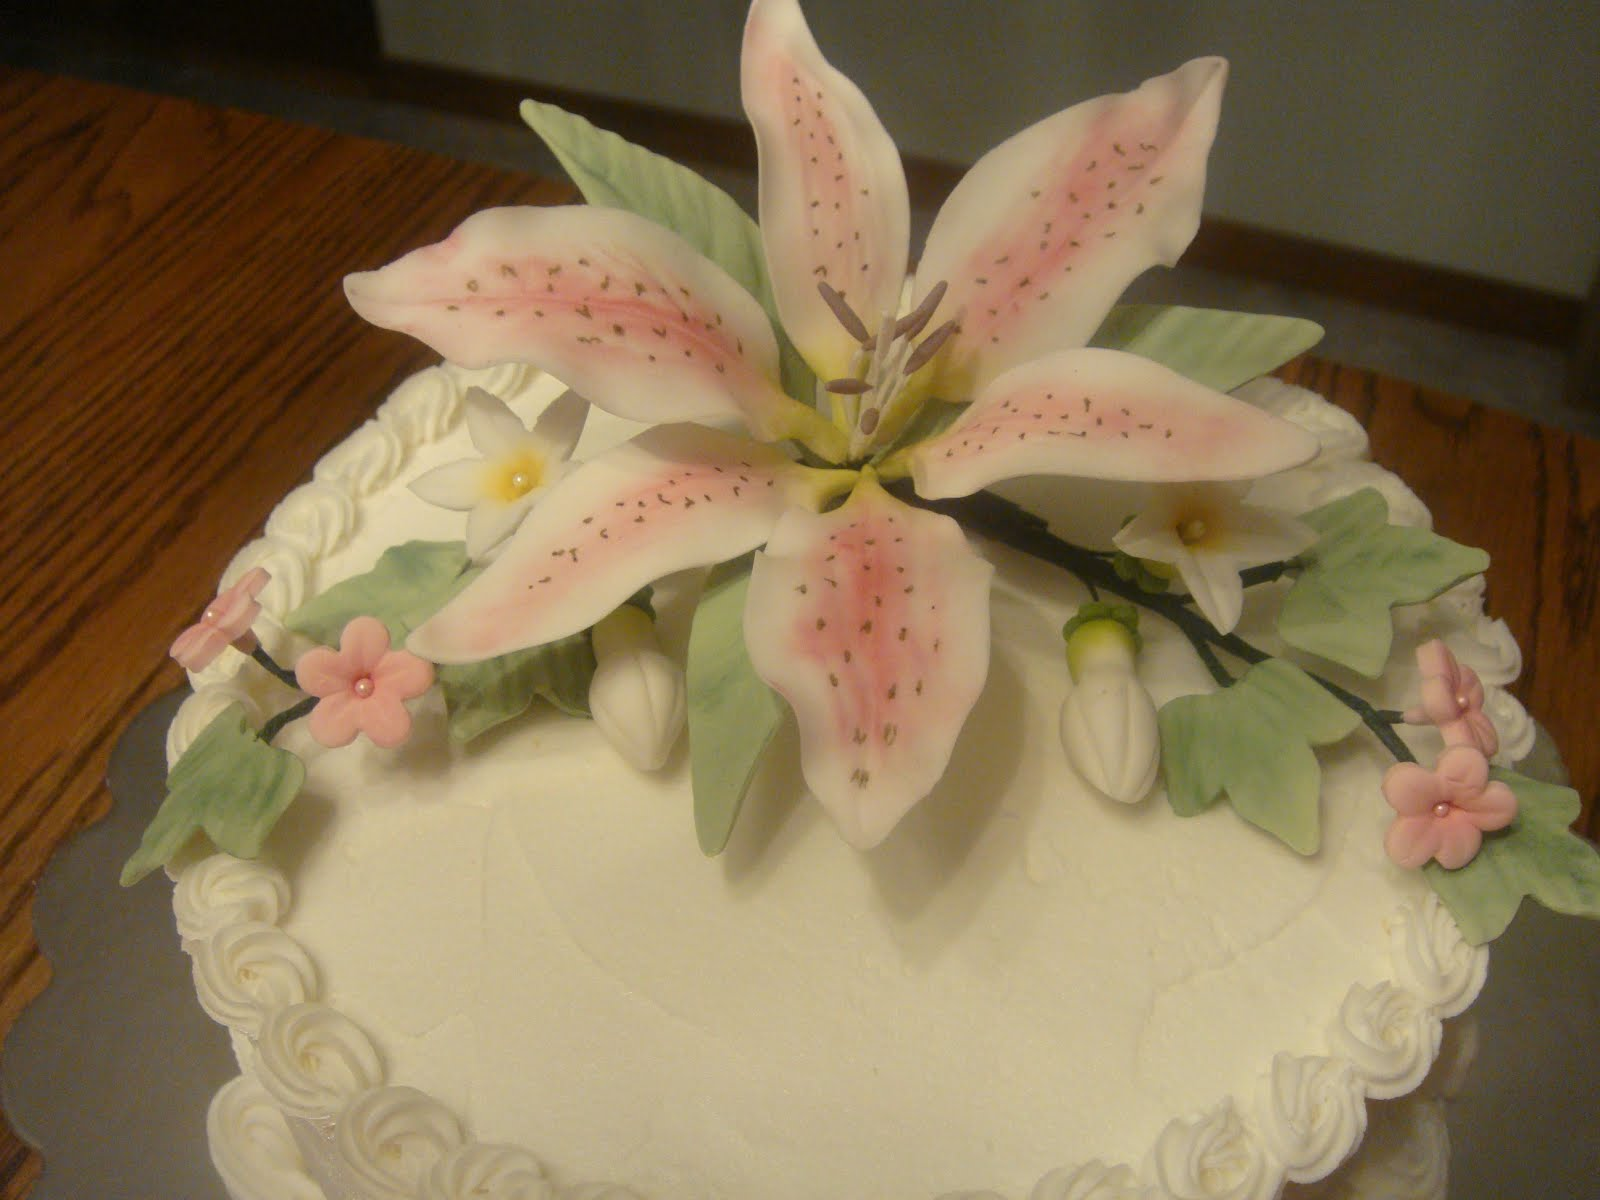 Cakes By LAM Designs Birthday Cake with Edible Gumpaste Flowers